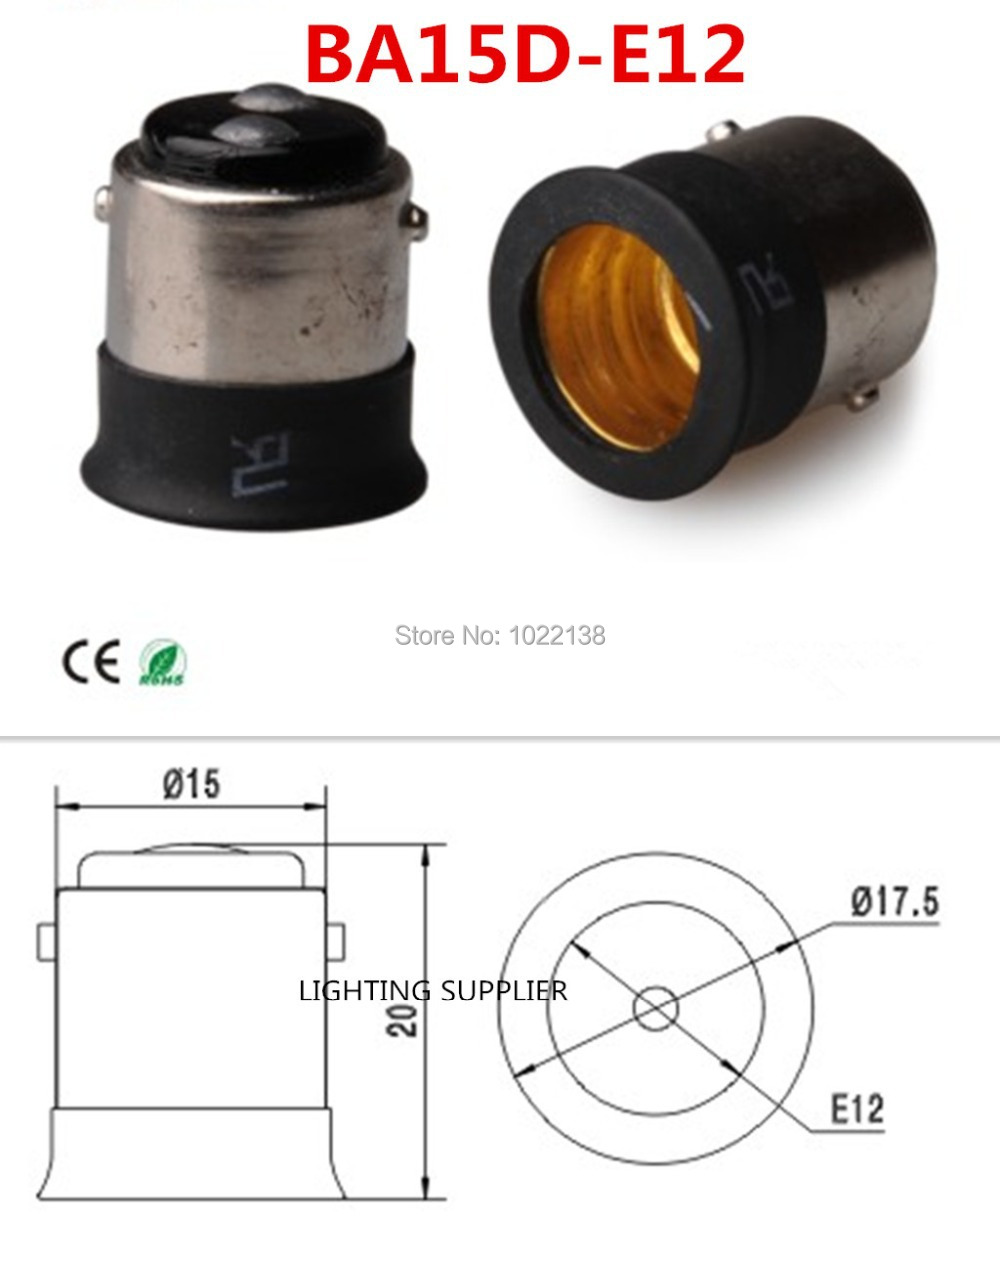 50pcs BA15D To E12 LED Socket Adapter BA15D-E12 Lamp Holder Adapter Coverter Bulb Base  Free Shipping With Tracking No.